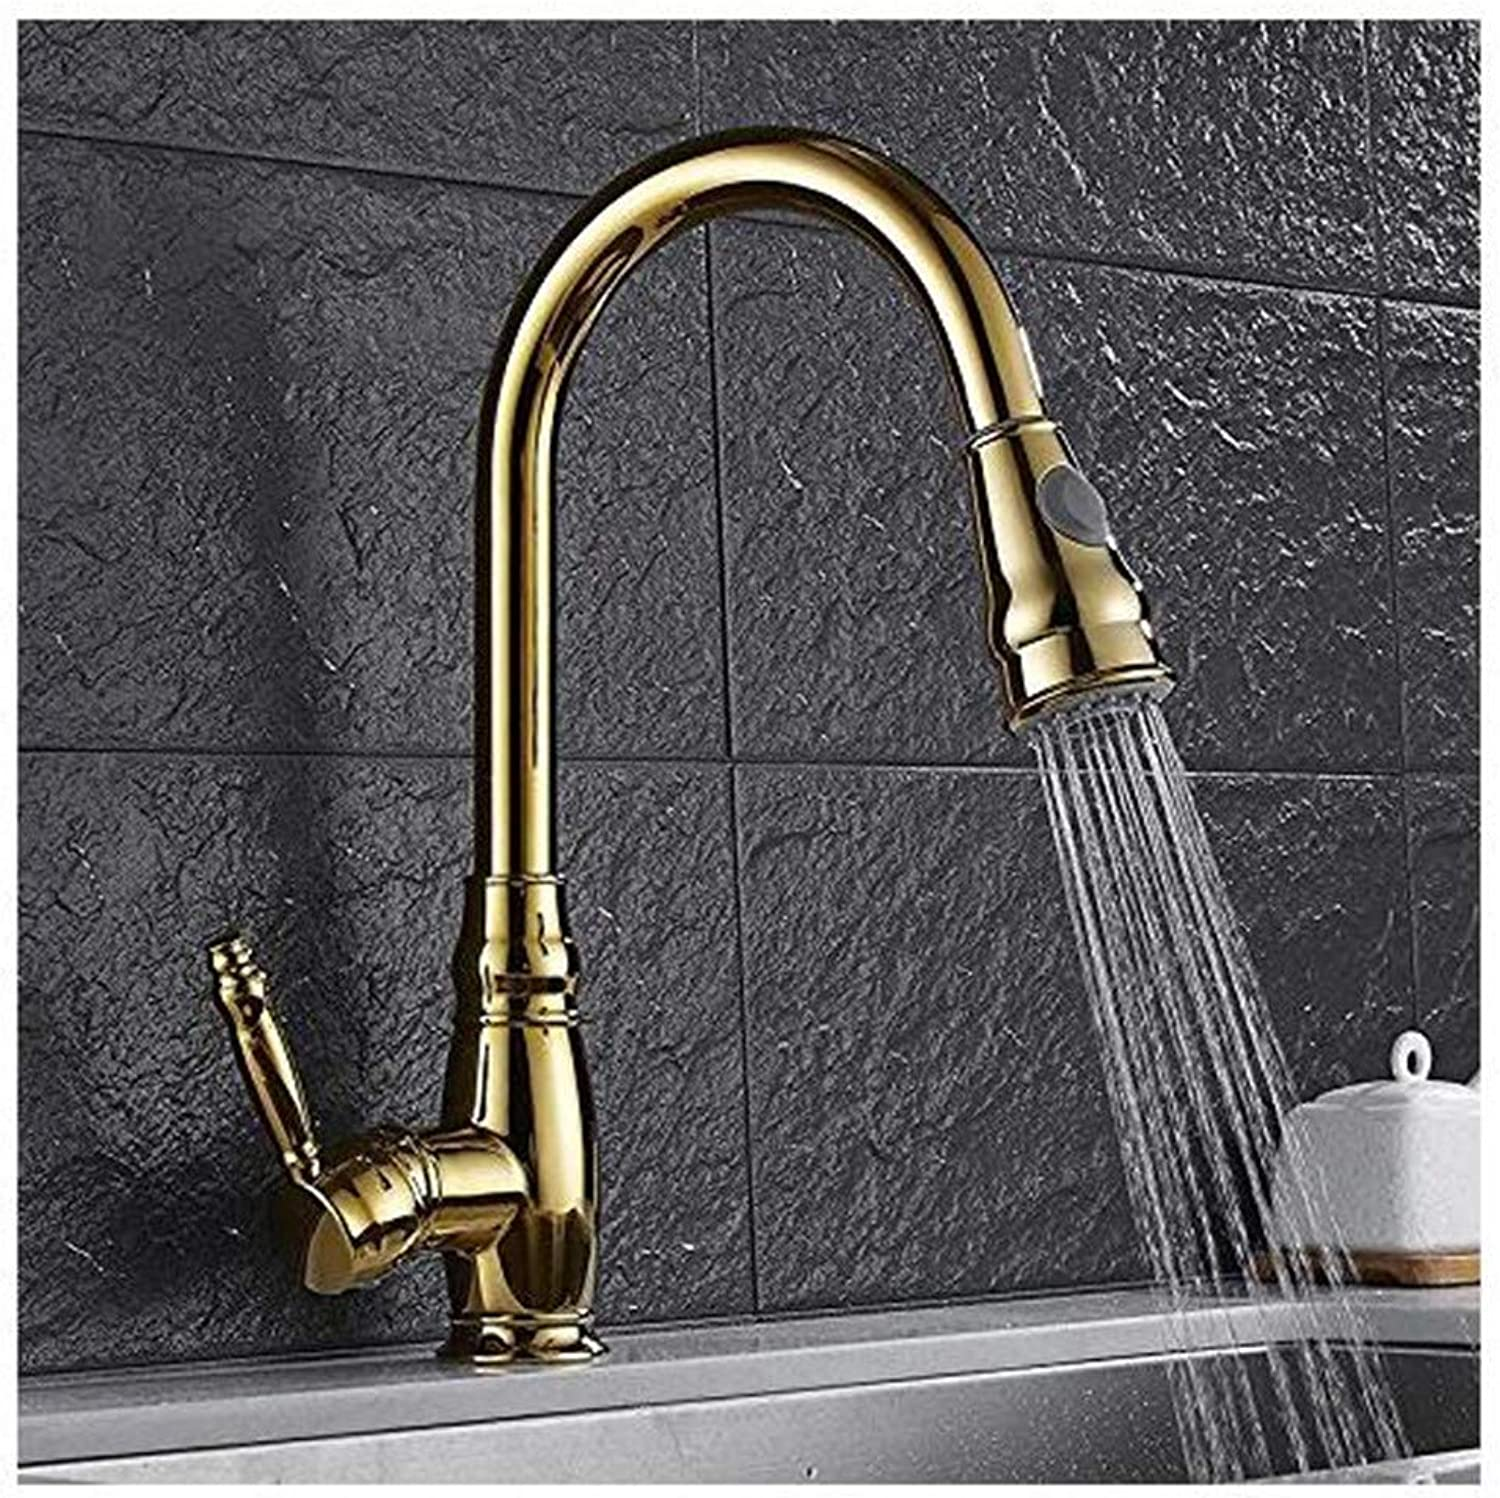 Chrome Brass Kitchen Faucet Kitchen Faucets golden golden golden Mixer Cold and Hot Kitchen Tap Single Holder Single Hole Pull Out Mixer Tap 360 Degree 3f6662